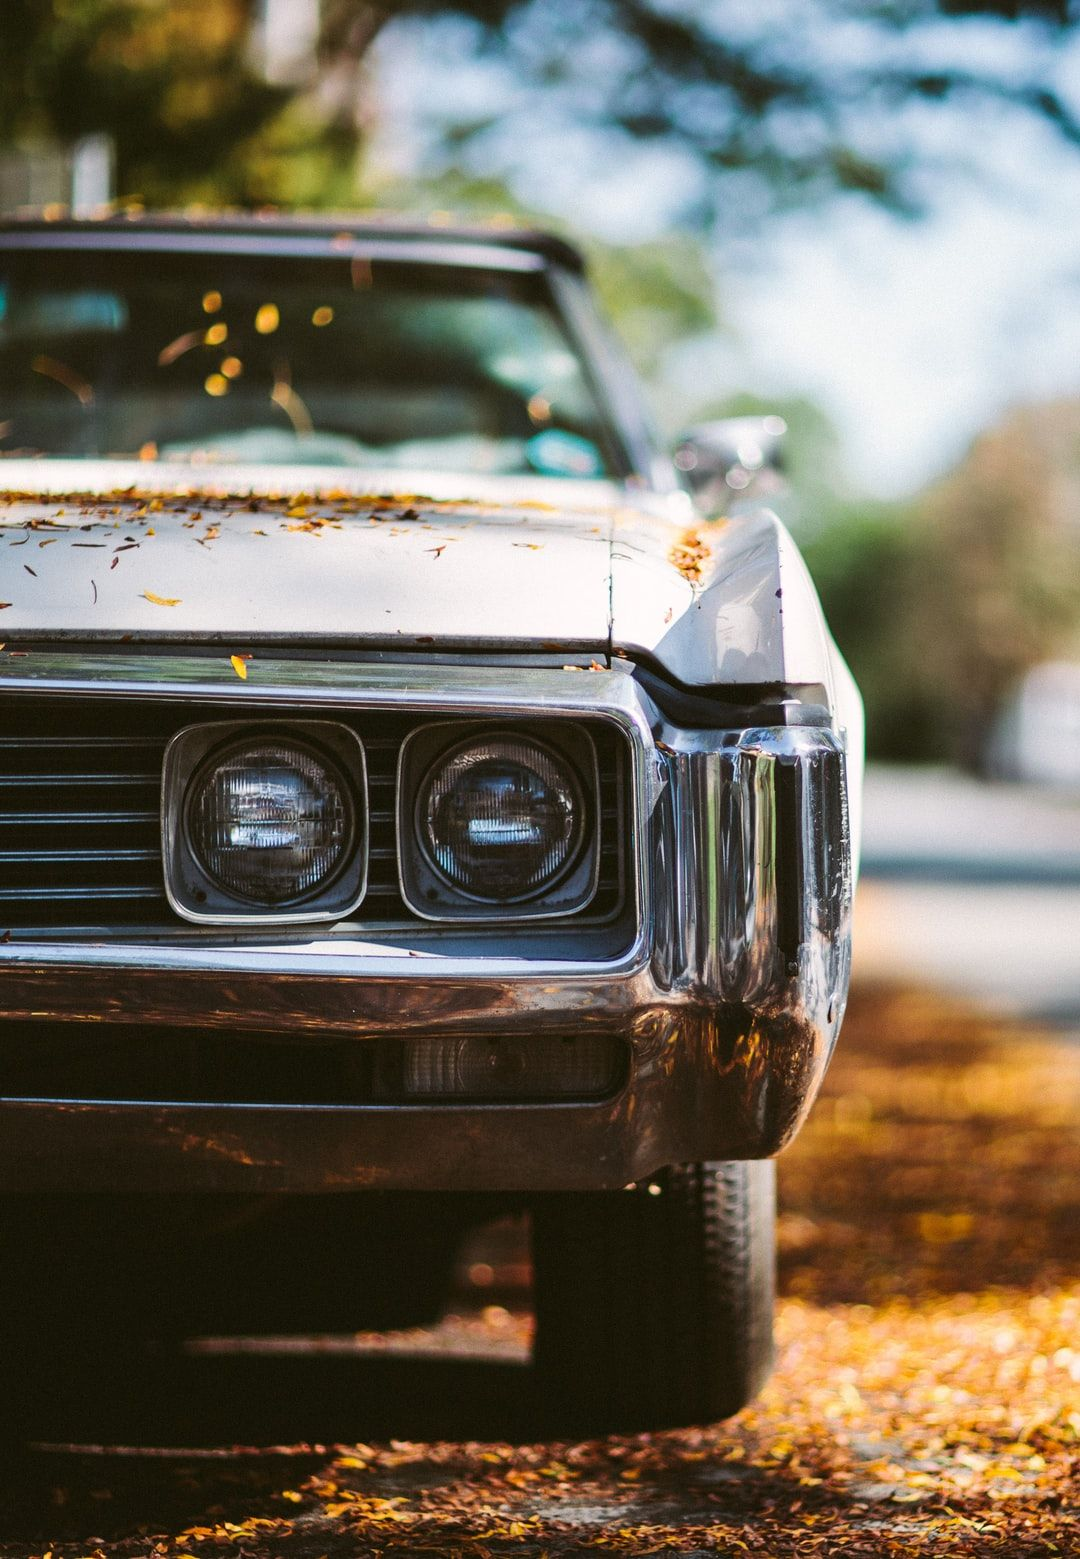 Strathcona Vintage Car Download This Photo By Pravin Narsing On Unsplash In 2020 Classic Car Show Car Wallpapers Classic Cars